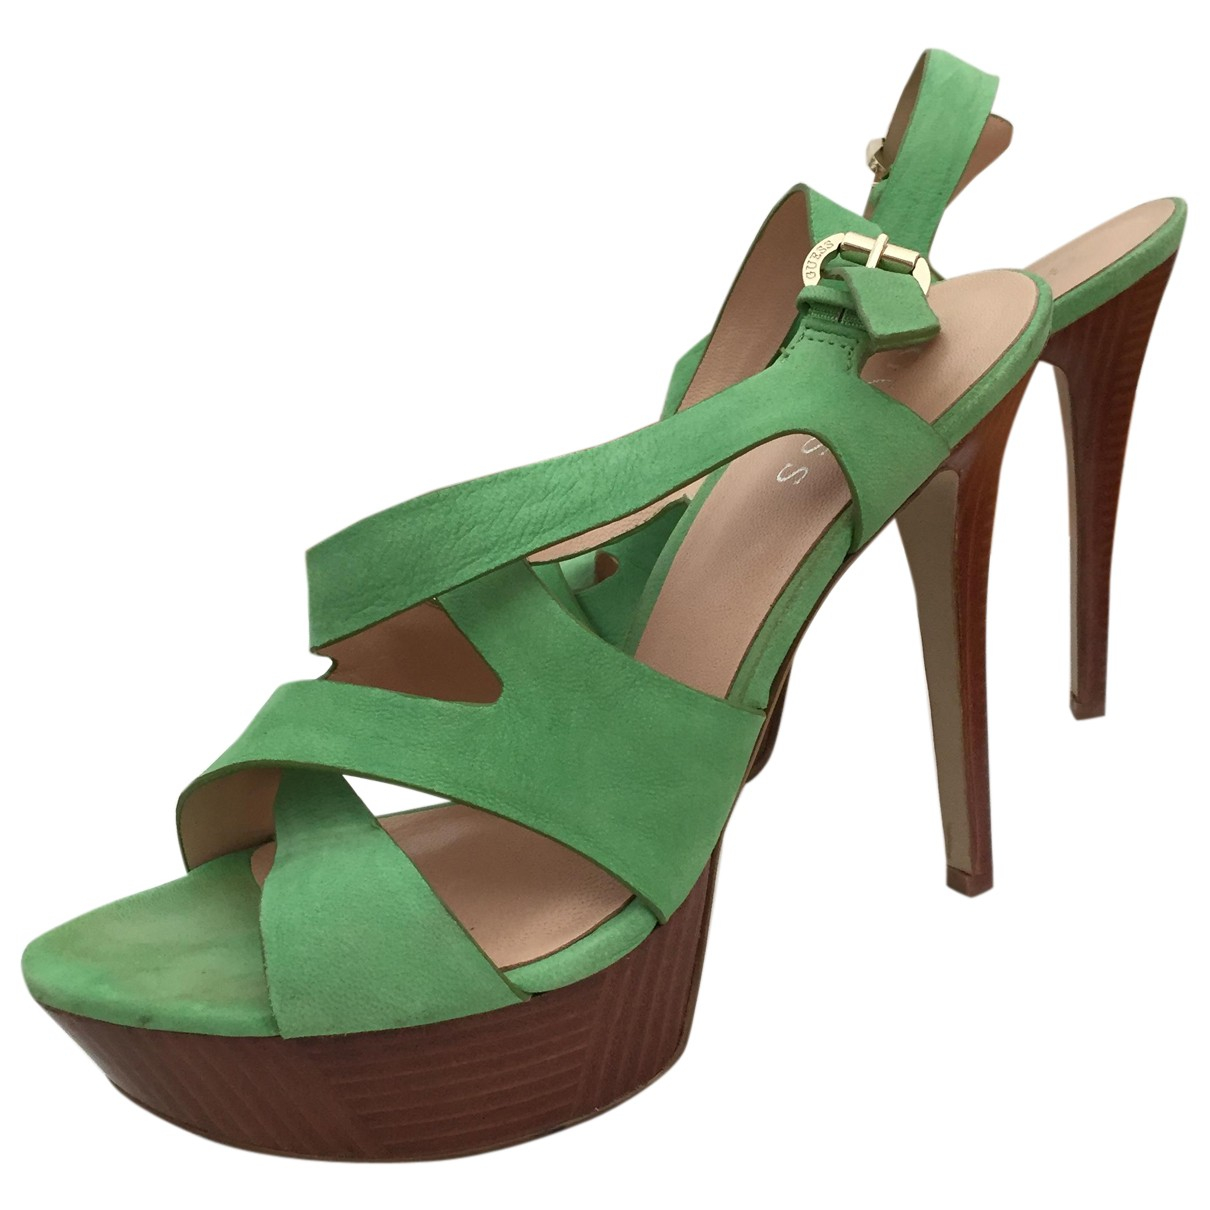 Guess N Green Leather Sandals for Women 39 EU